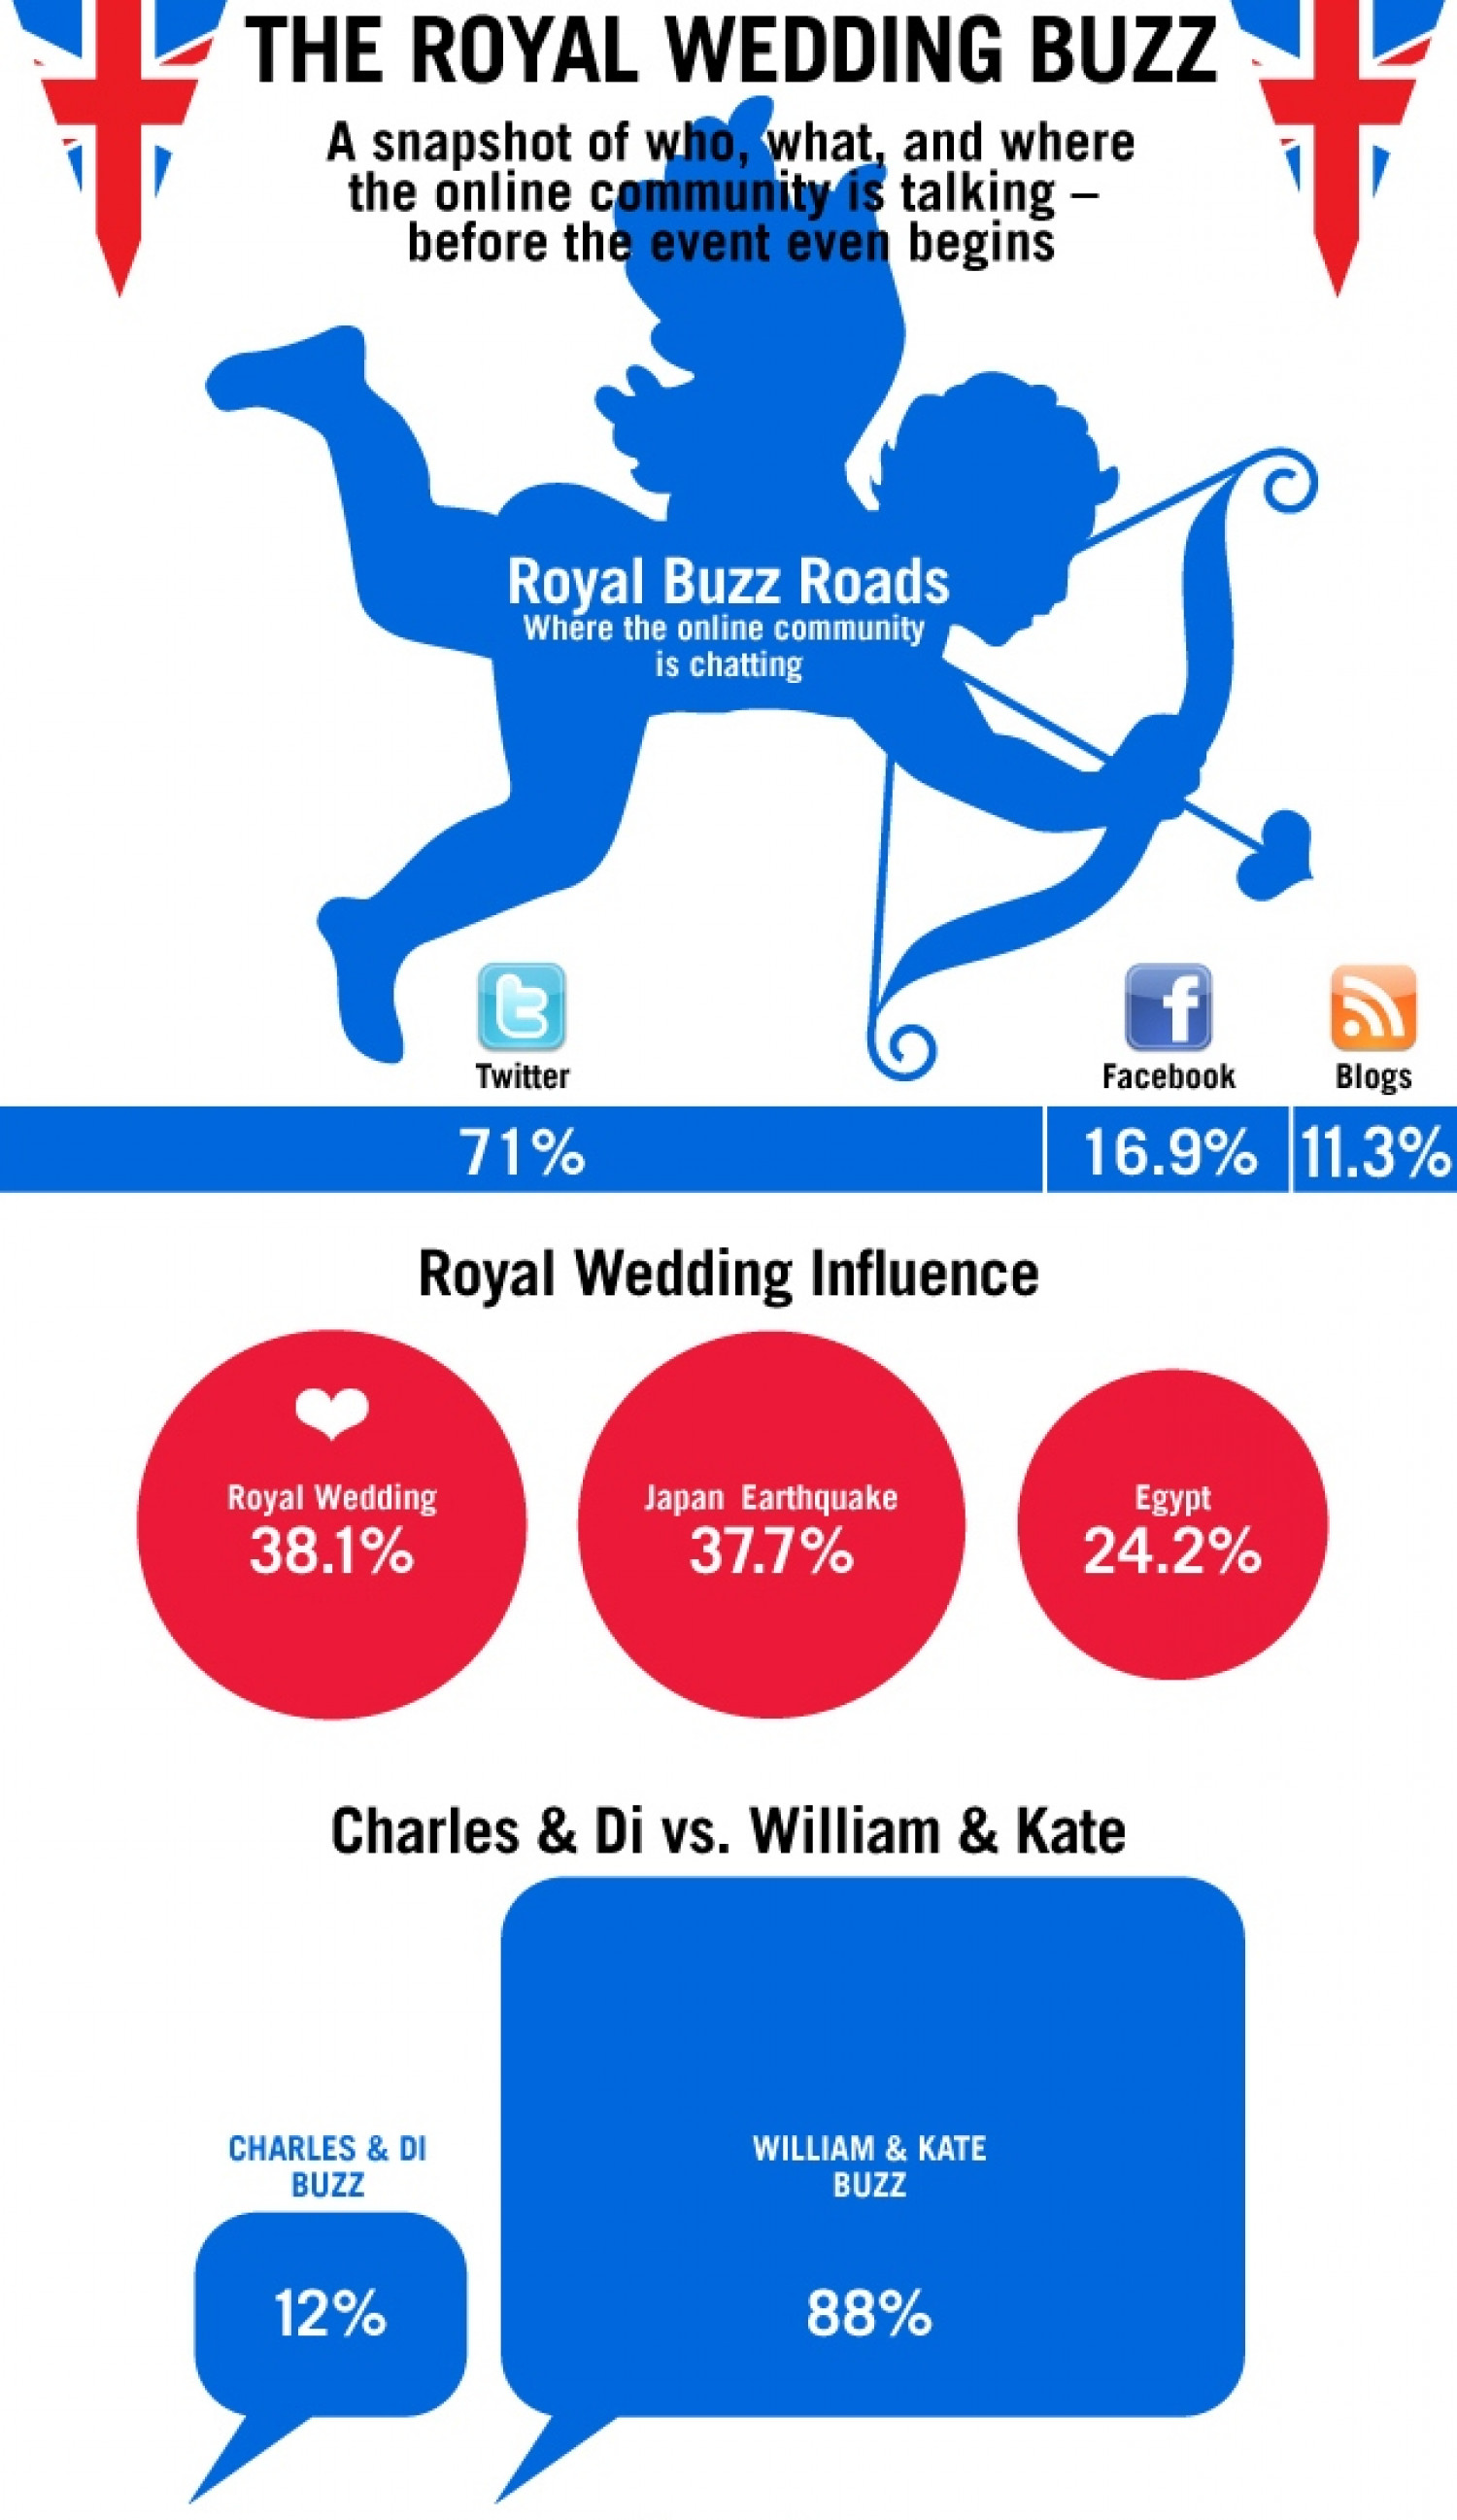 The Royal Wedding Buzz Infographic